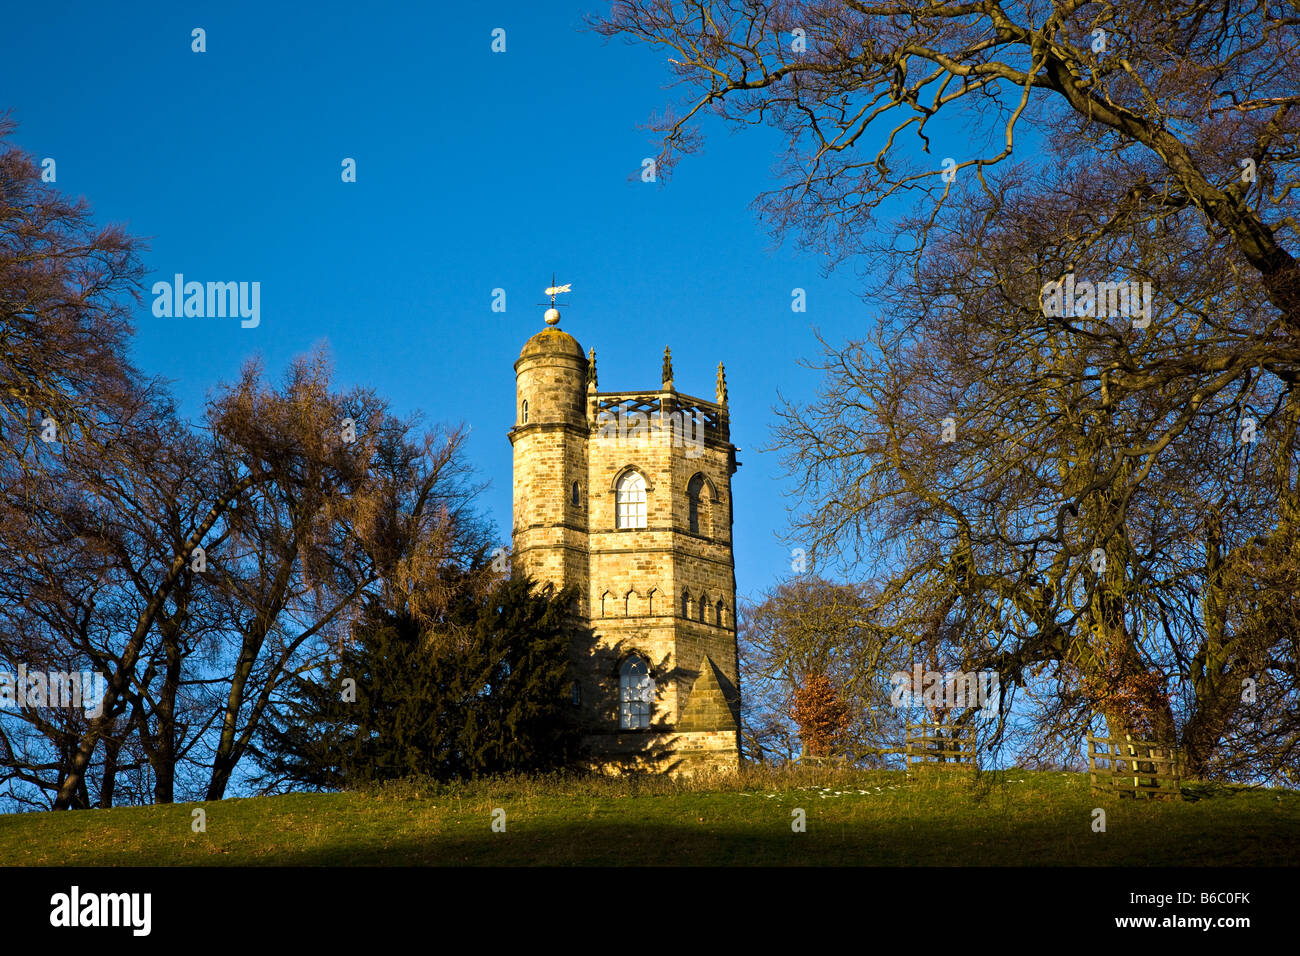 The Culloden Tower Richmond North Yorkshire - Stock Image